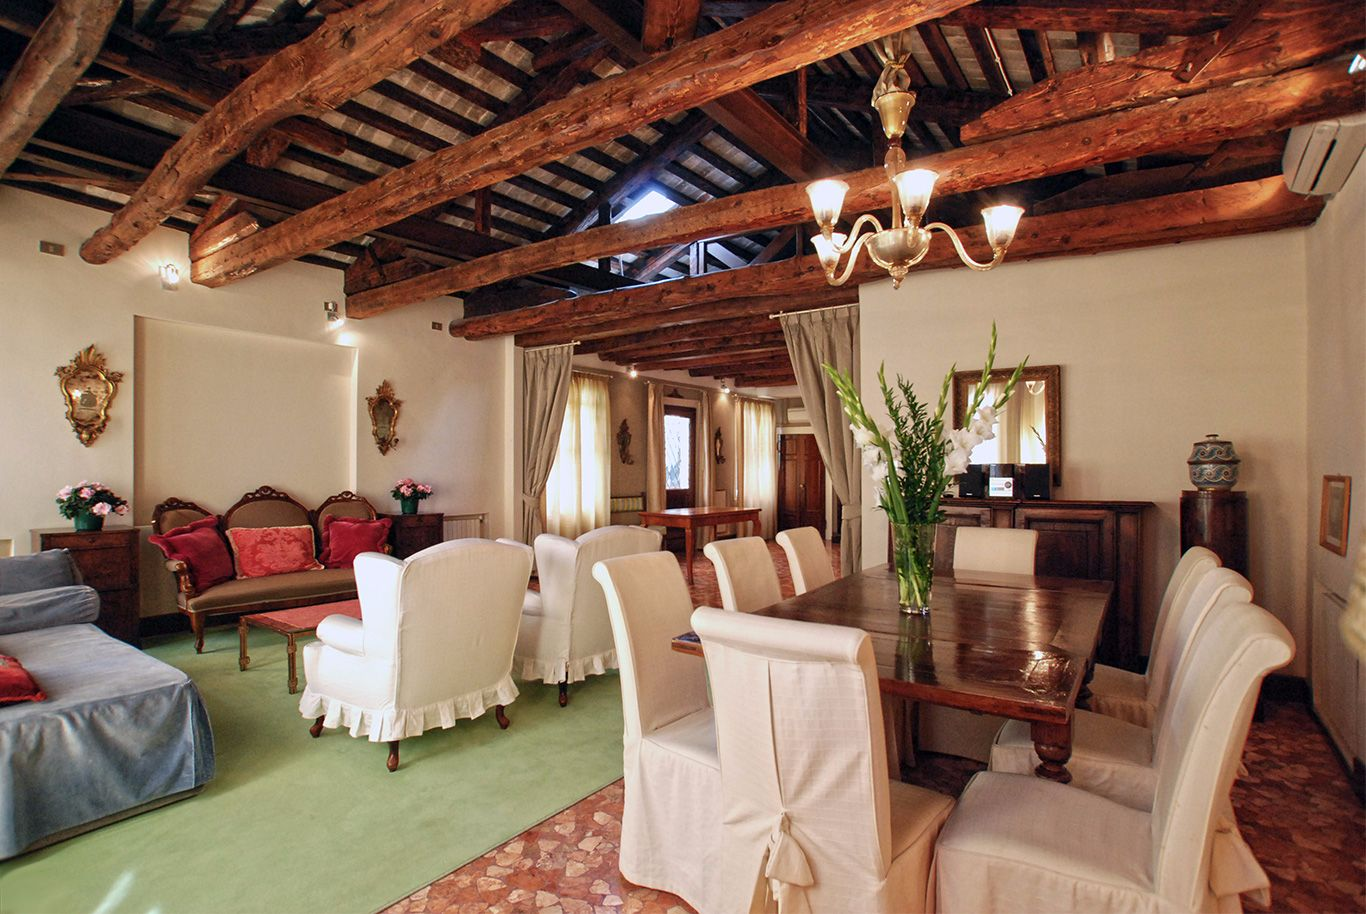 the living/dining area is truly Venetian with authentic furniture